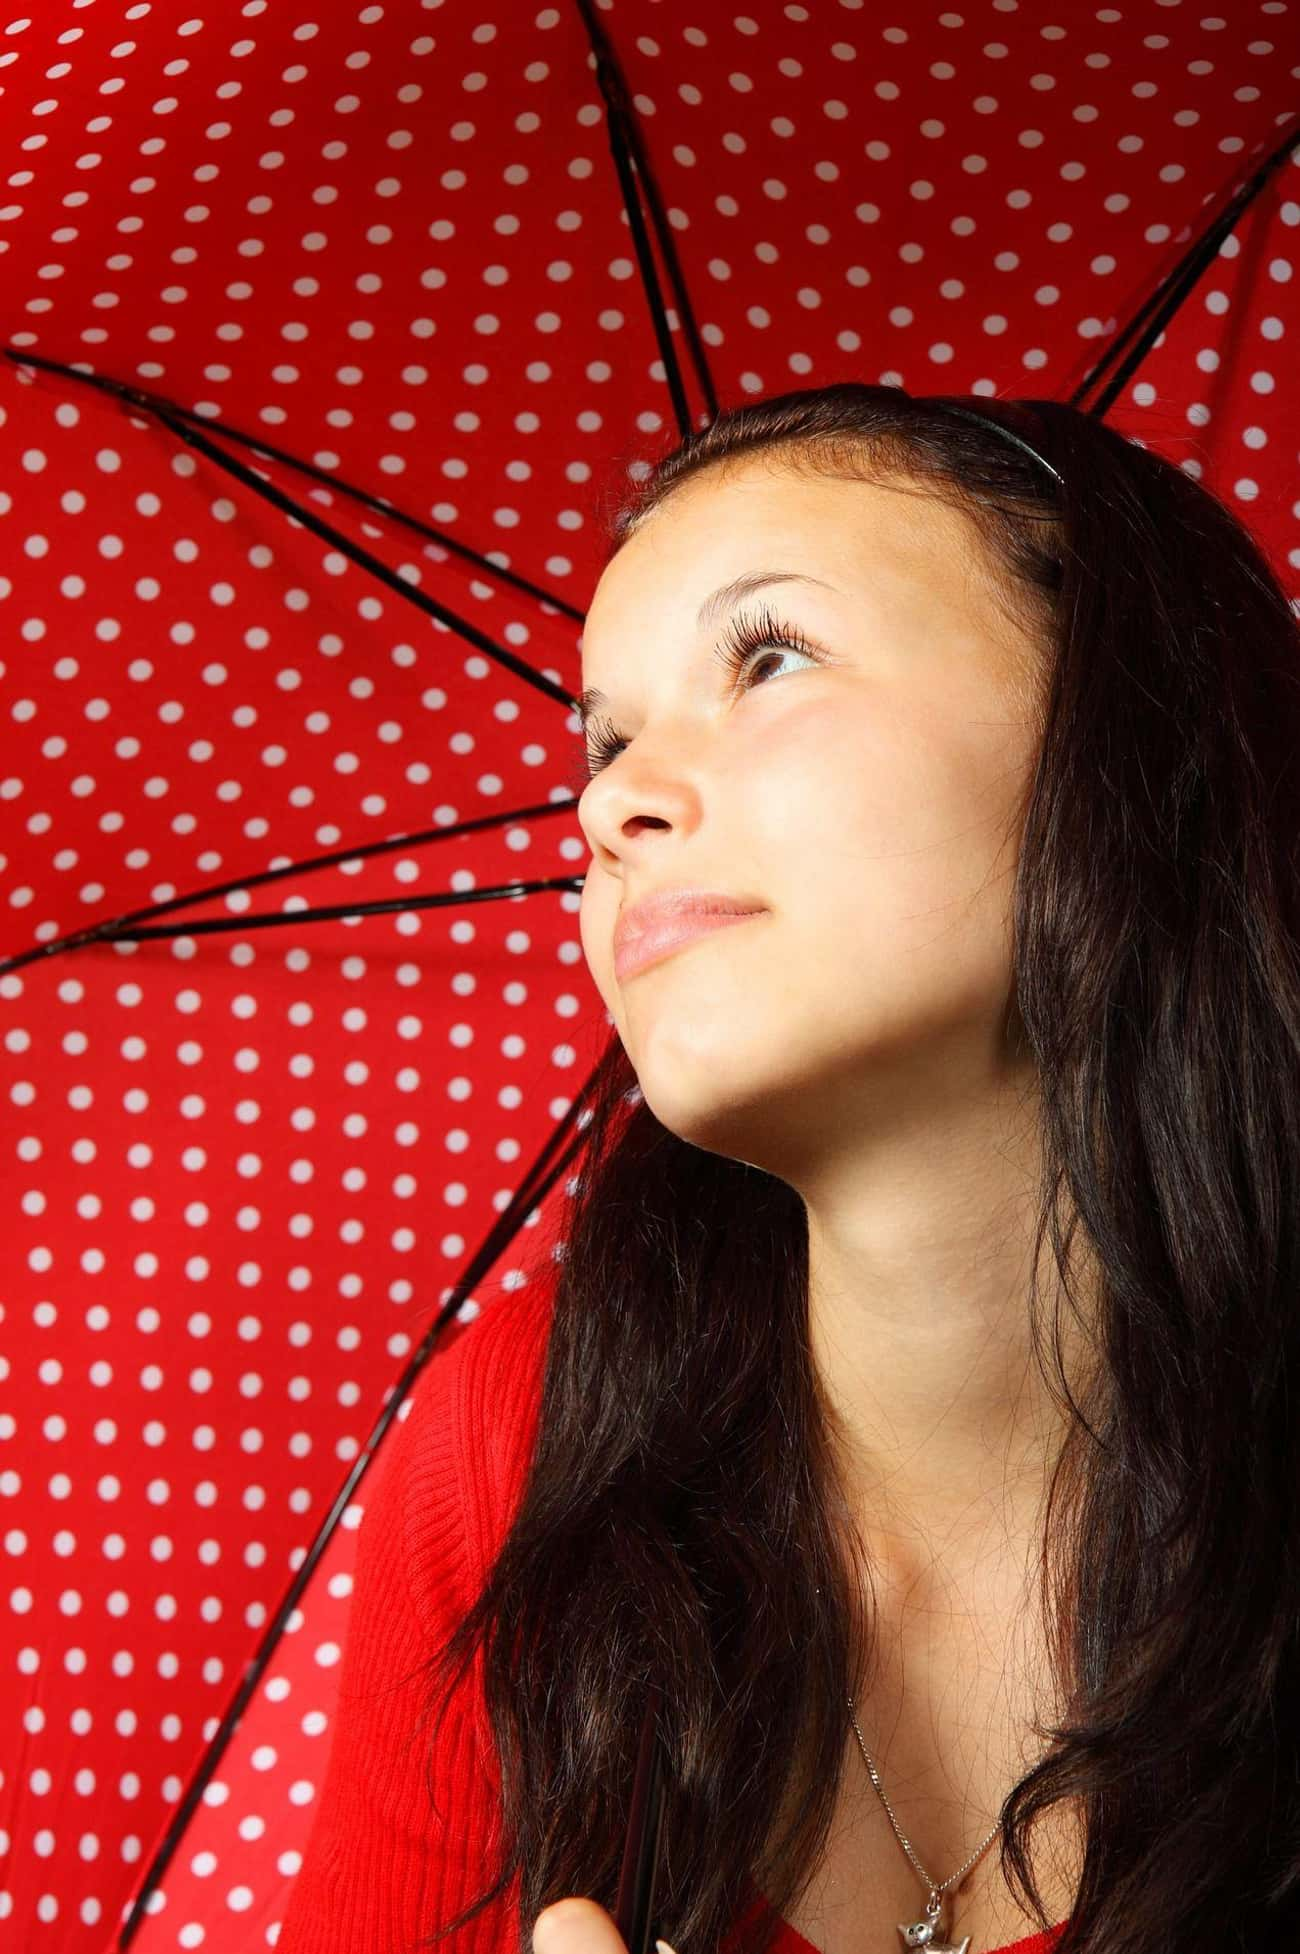 Opening Umbrellas Indoors is listed (or ranked) 2 on the list The Origins of the 13 Most Common Superstitions